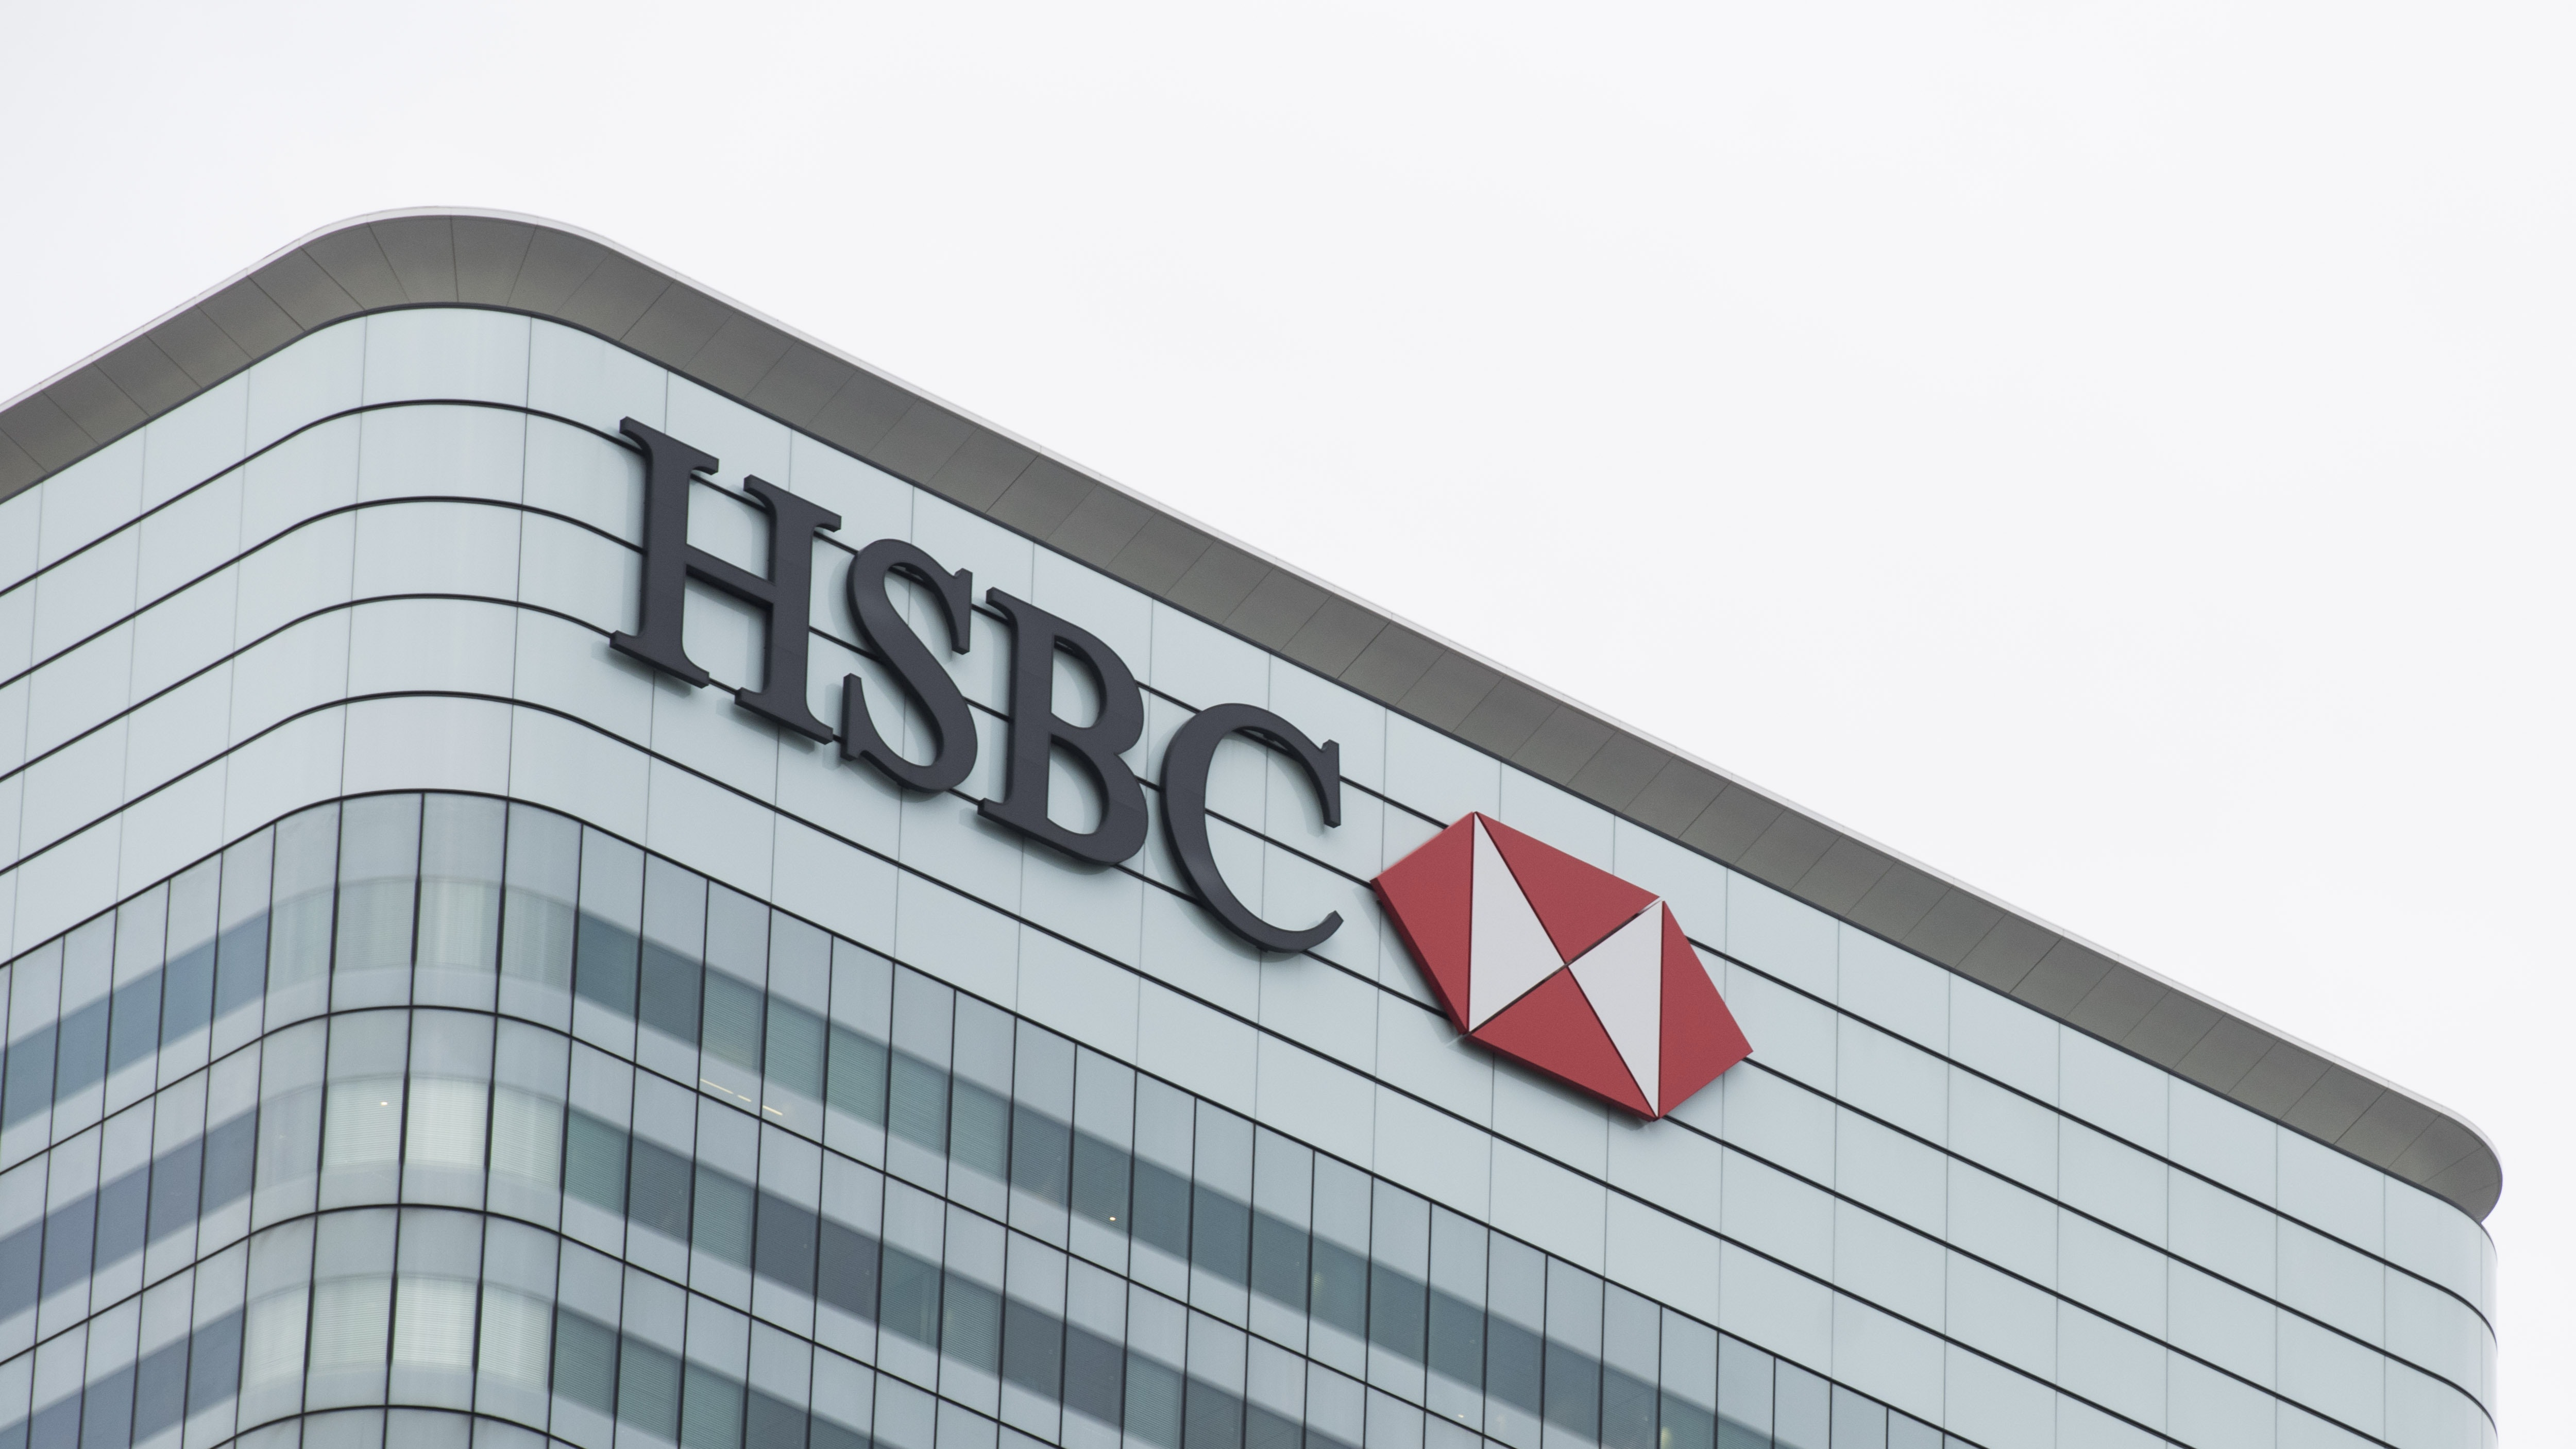 HSBC pay gap reveals men being paid twice as much as women